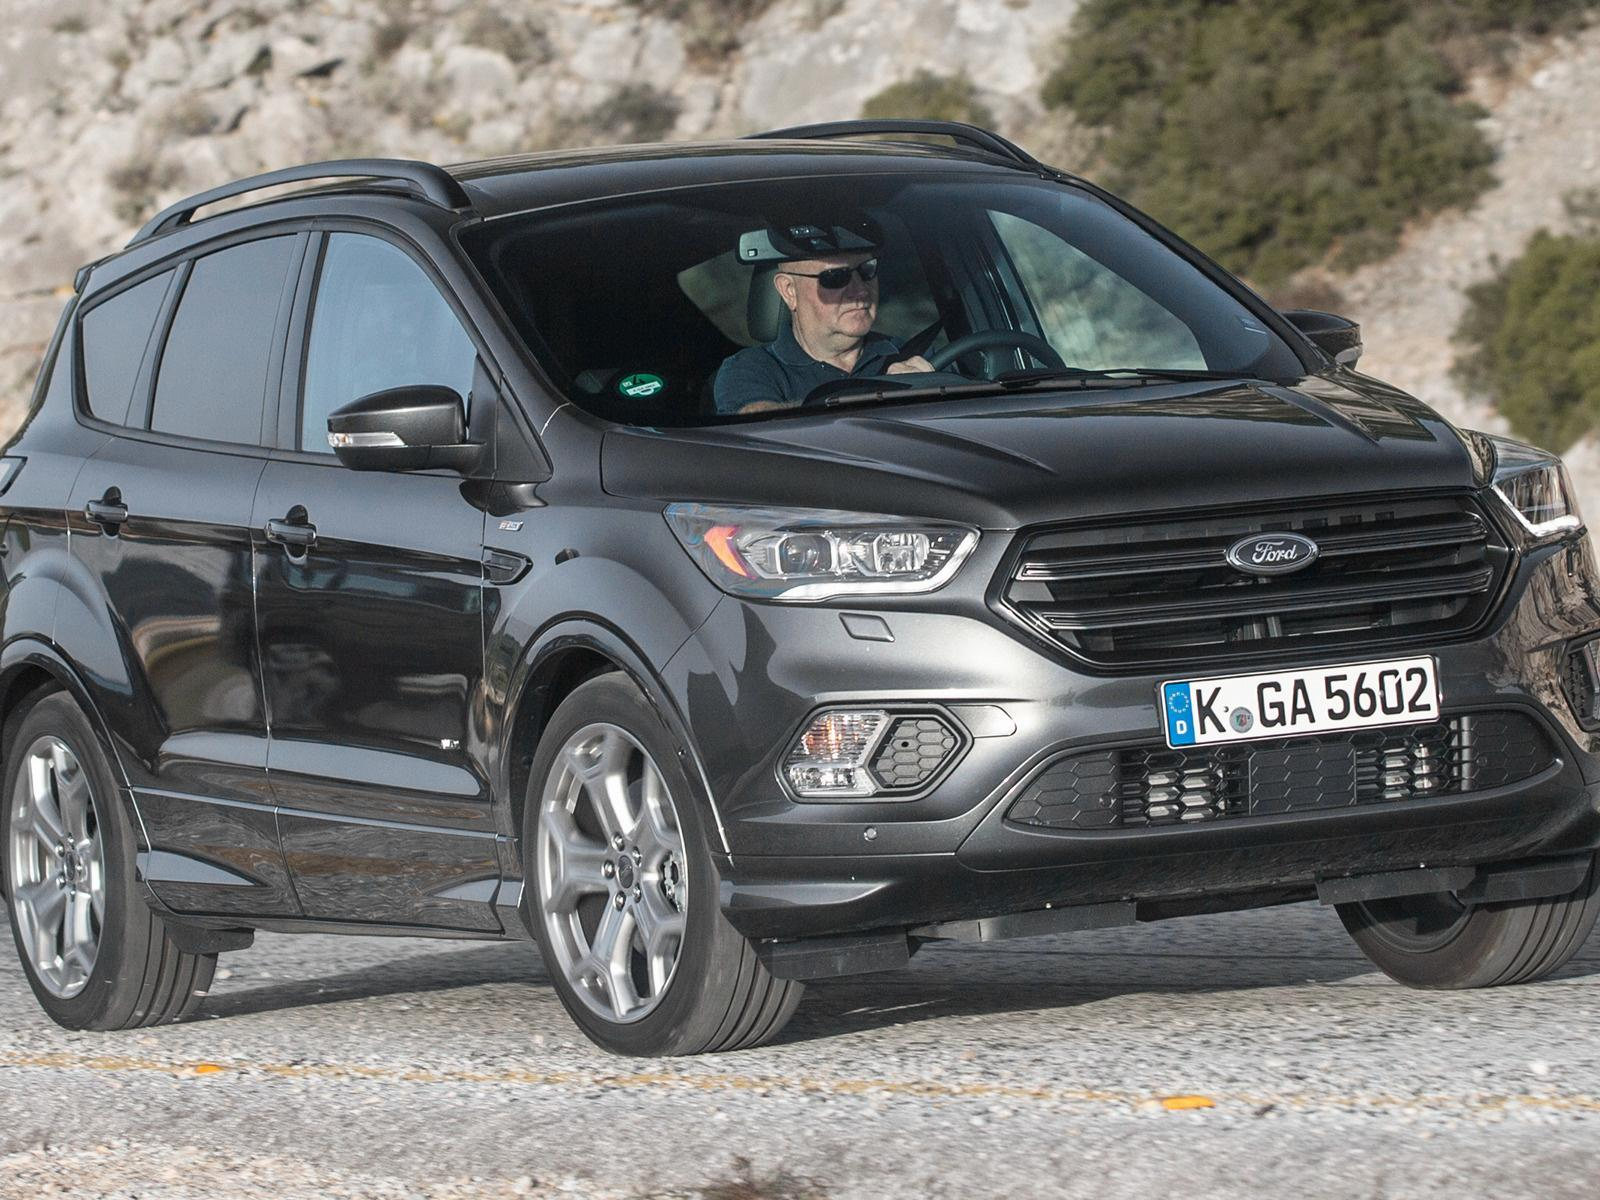 Ford Kuga Wallpaper HD 13 - 1920 X 1200 | Wall.BestCarMag.com